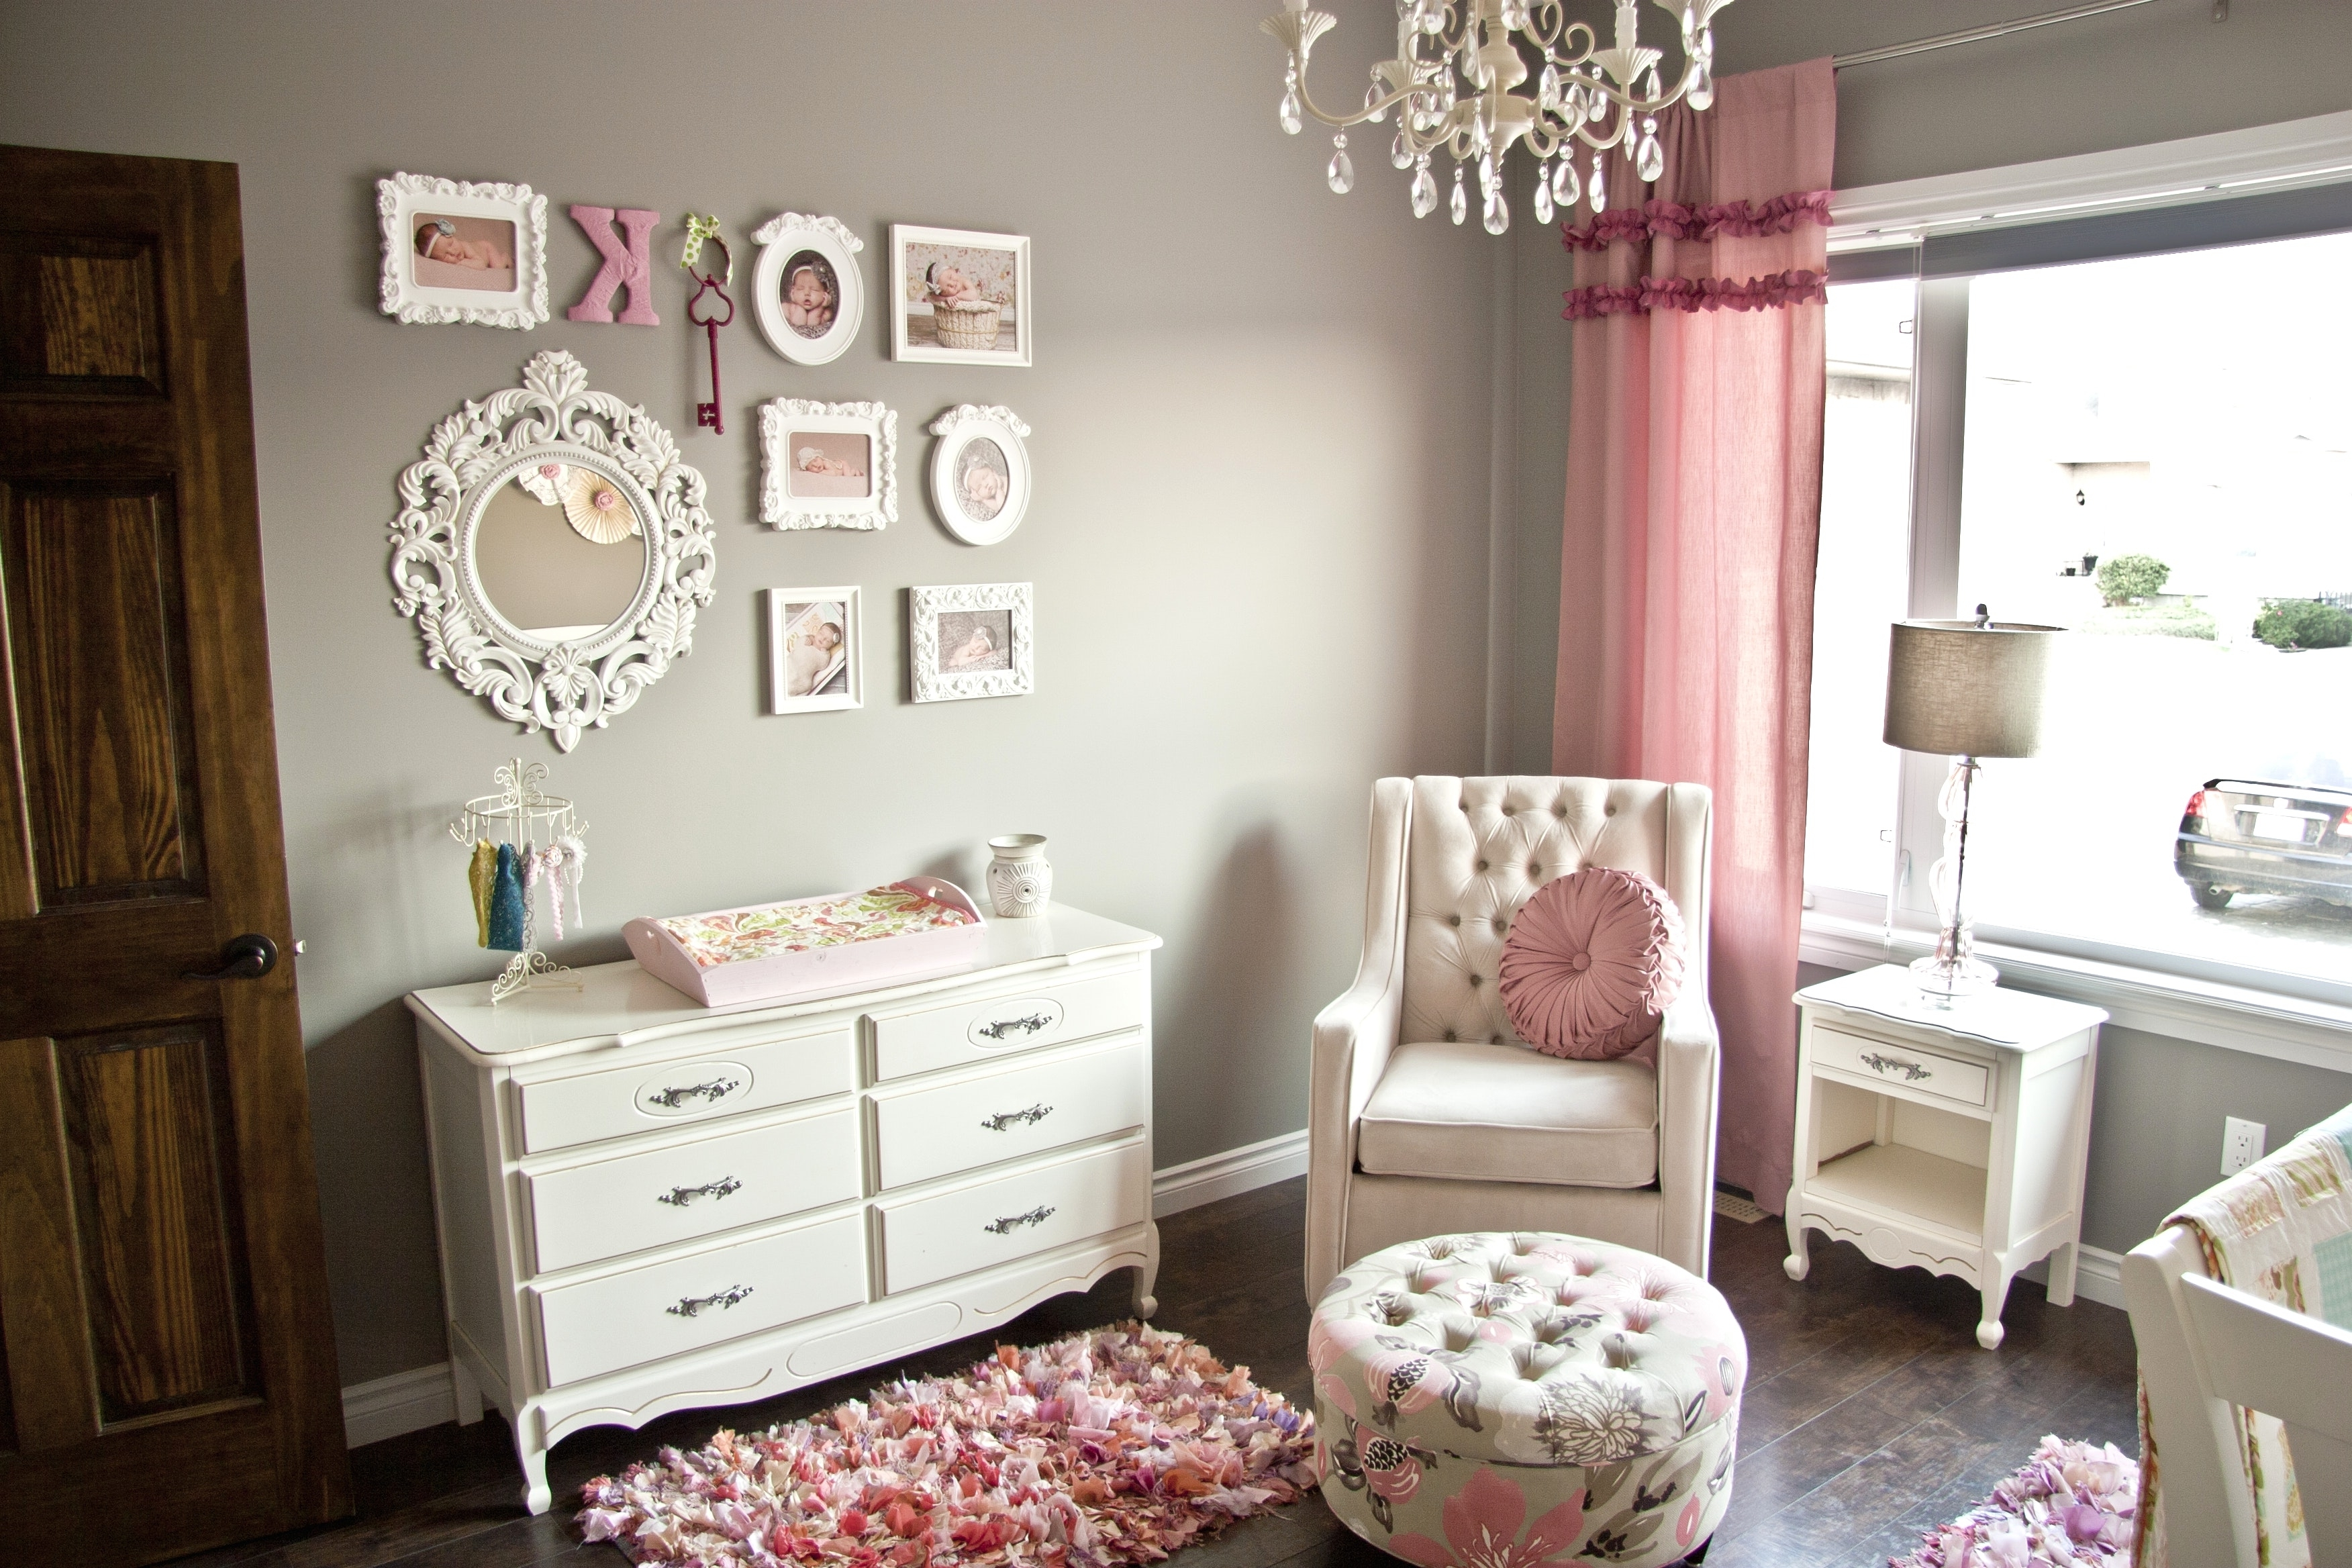 Chandeliers For Baby Girl Room In Recent Chandeliers Design : Amazing Baby Girl Room Chandelier With Kid (View 11 of 15)